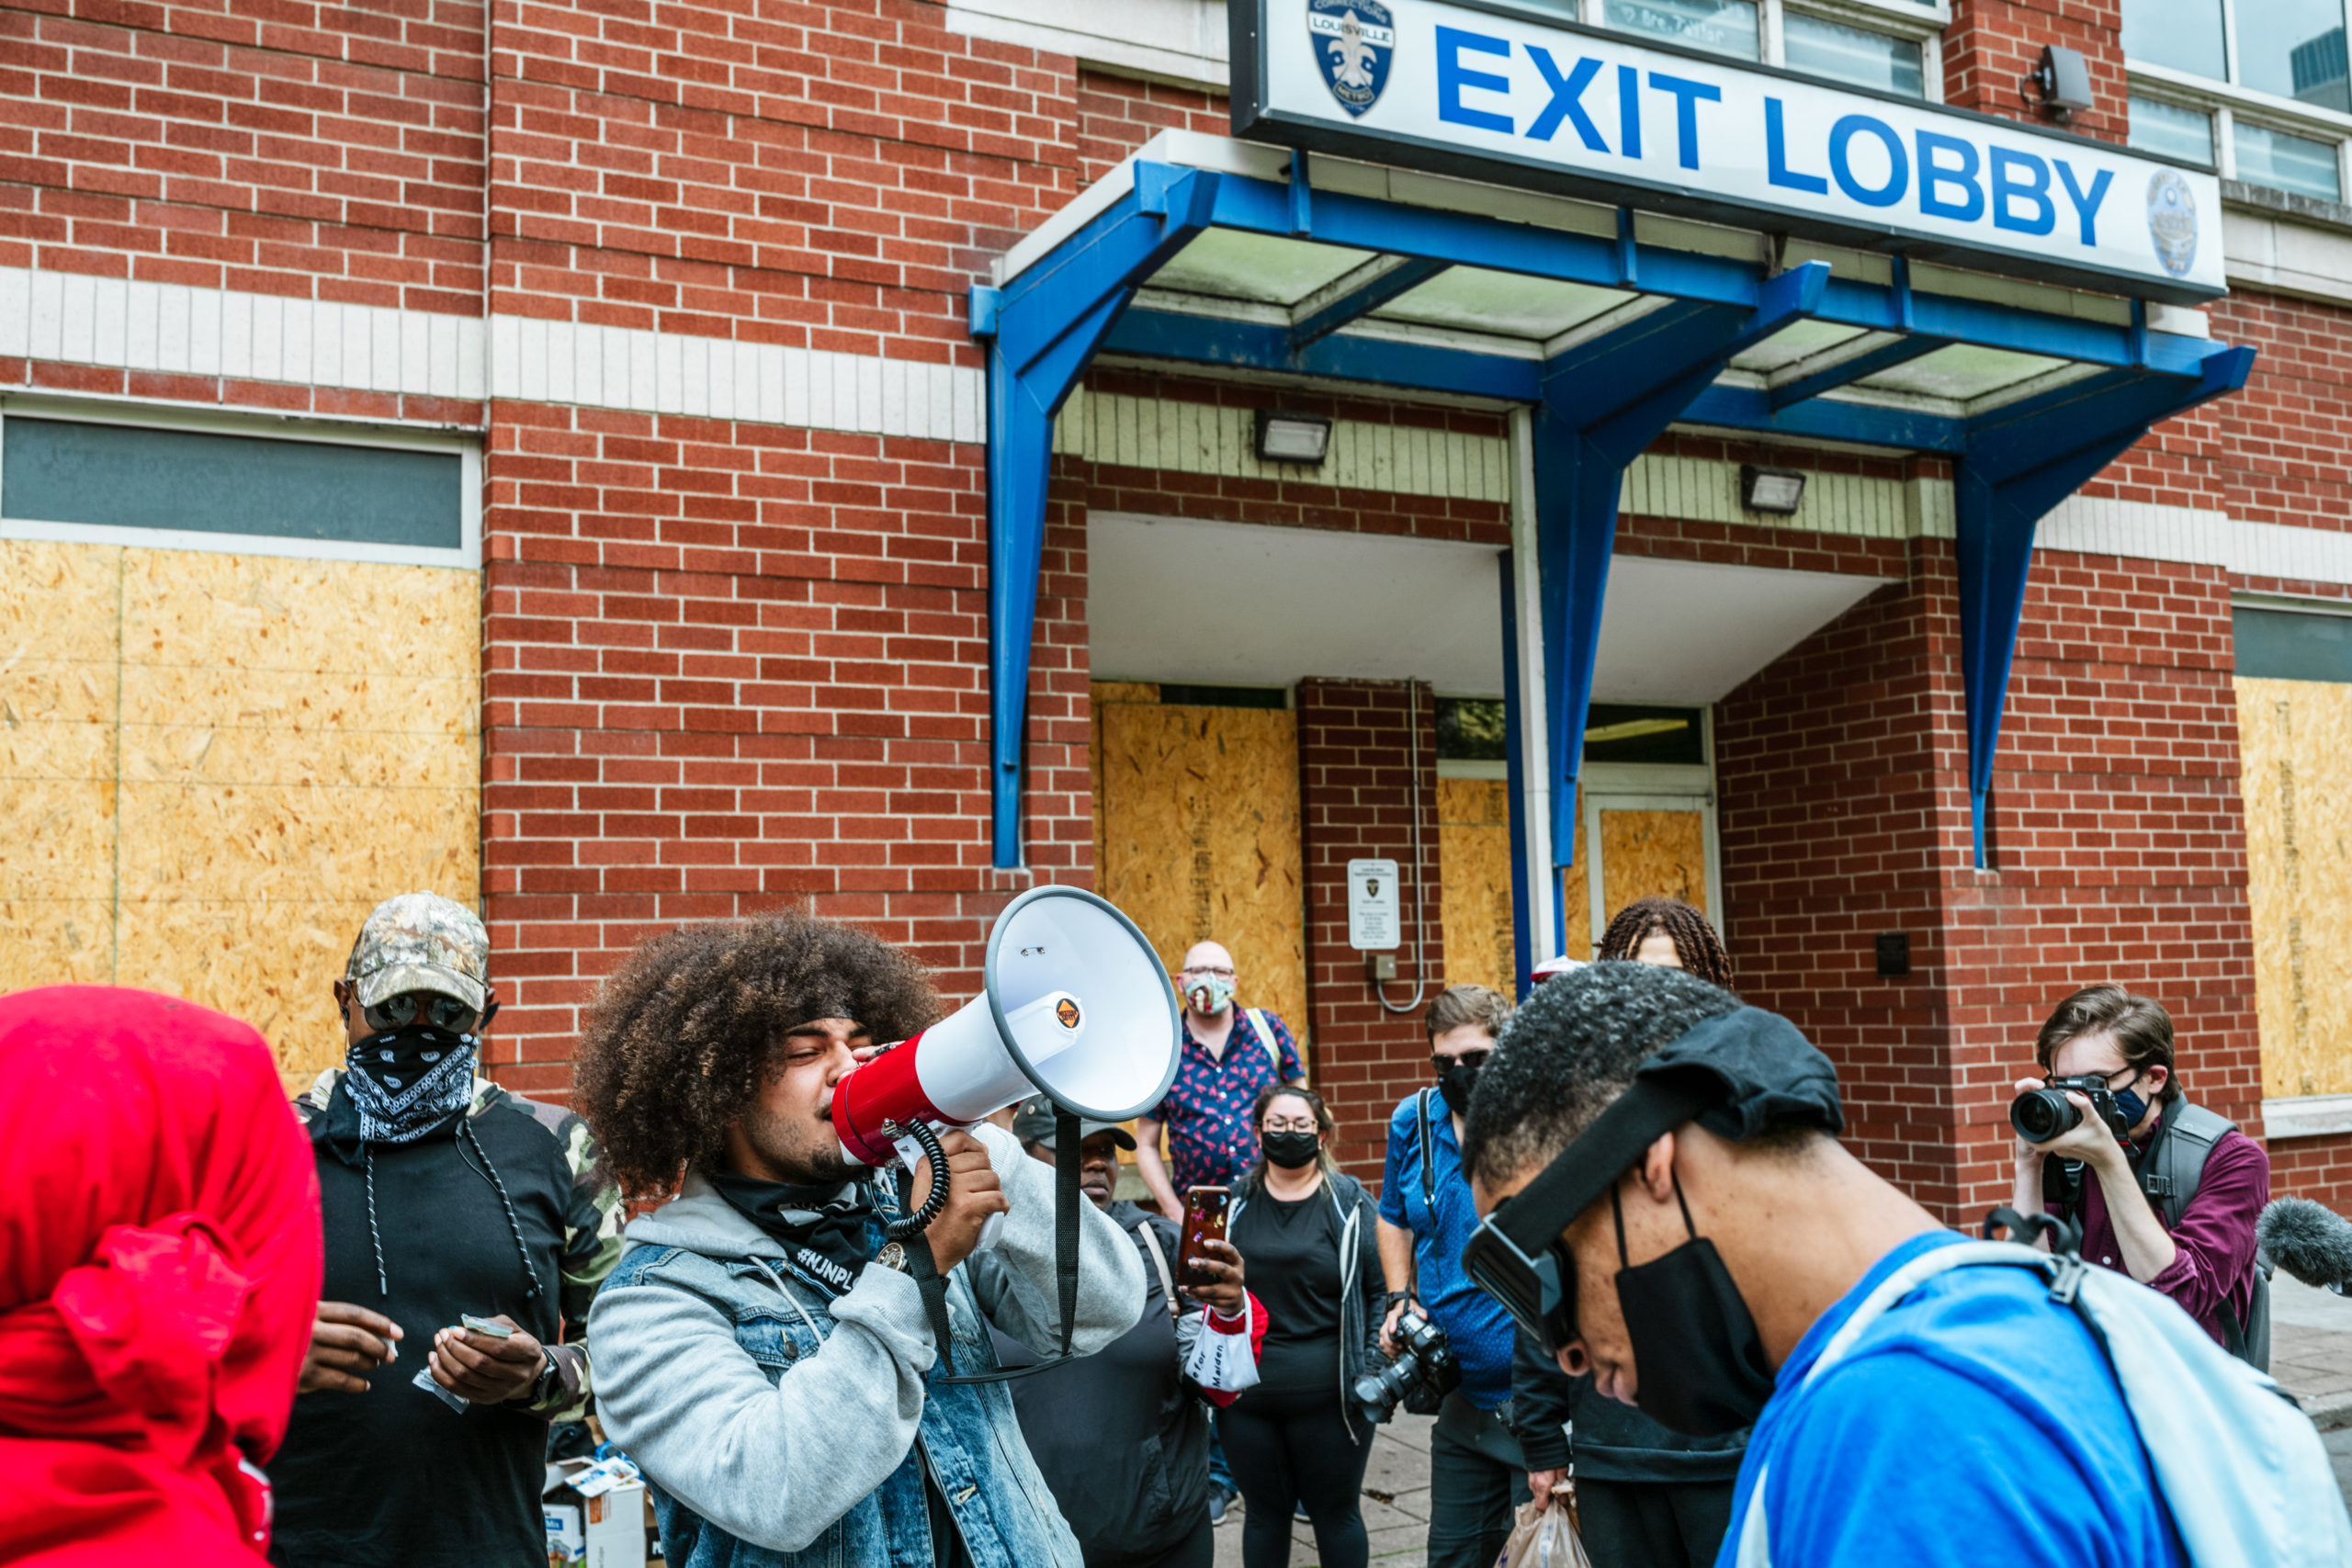 Protesters gather in front of the Metro Department of Corrections and demand the release of jailed demonstrators on September 24, 2020 in Louisville, Kentucky. (Jon Cherry/Getty Images)